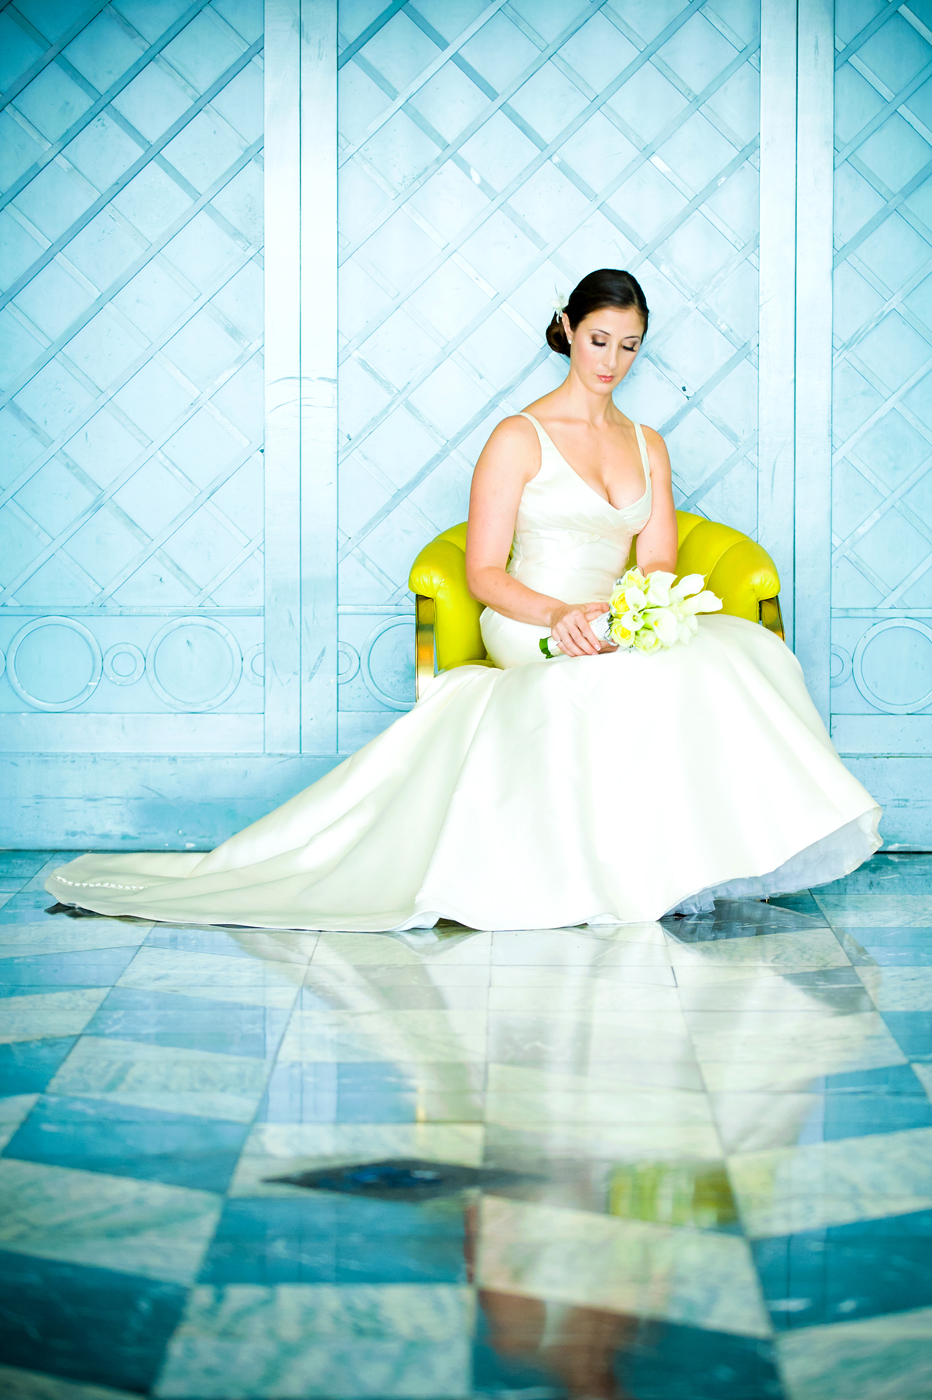 Wedding dresses fort lauderdale florida best wedding for Wedding dresses in south florida